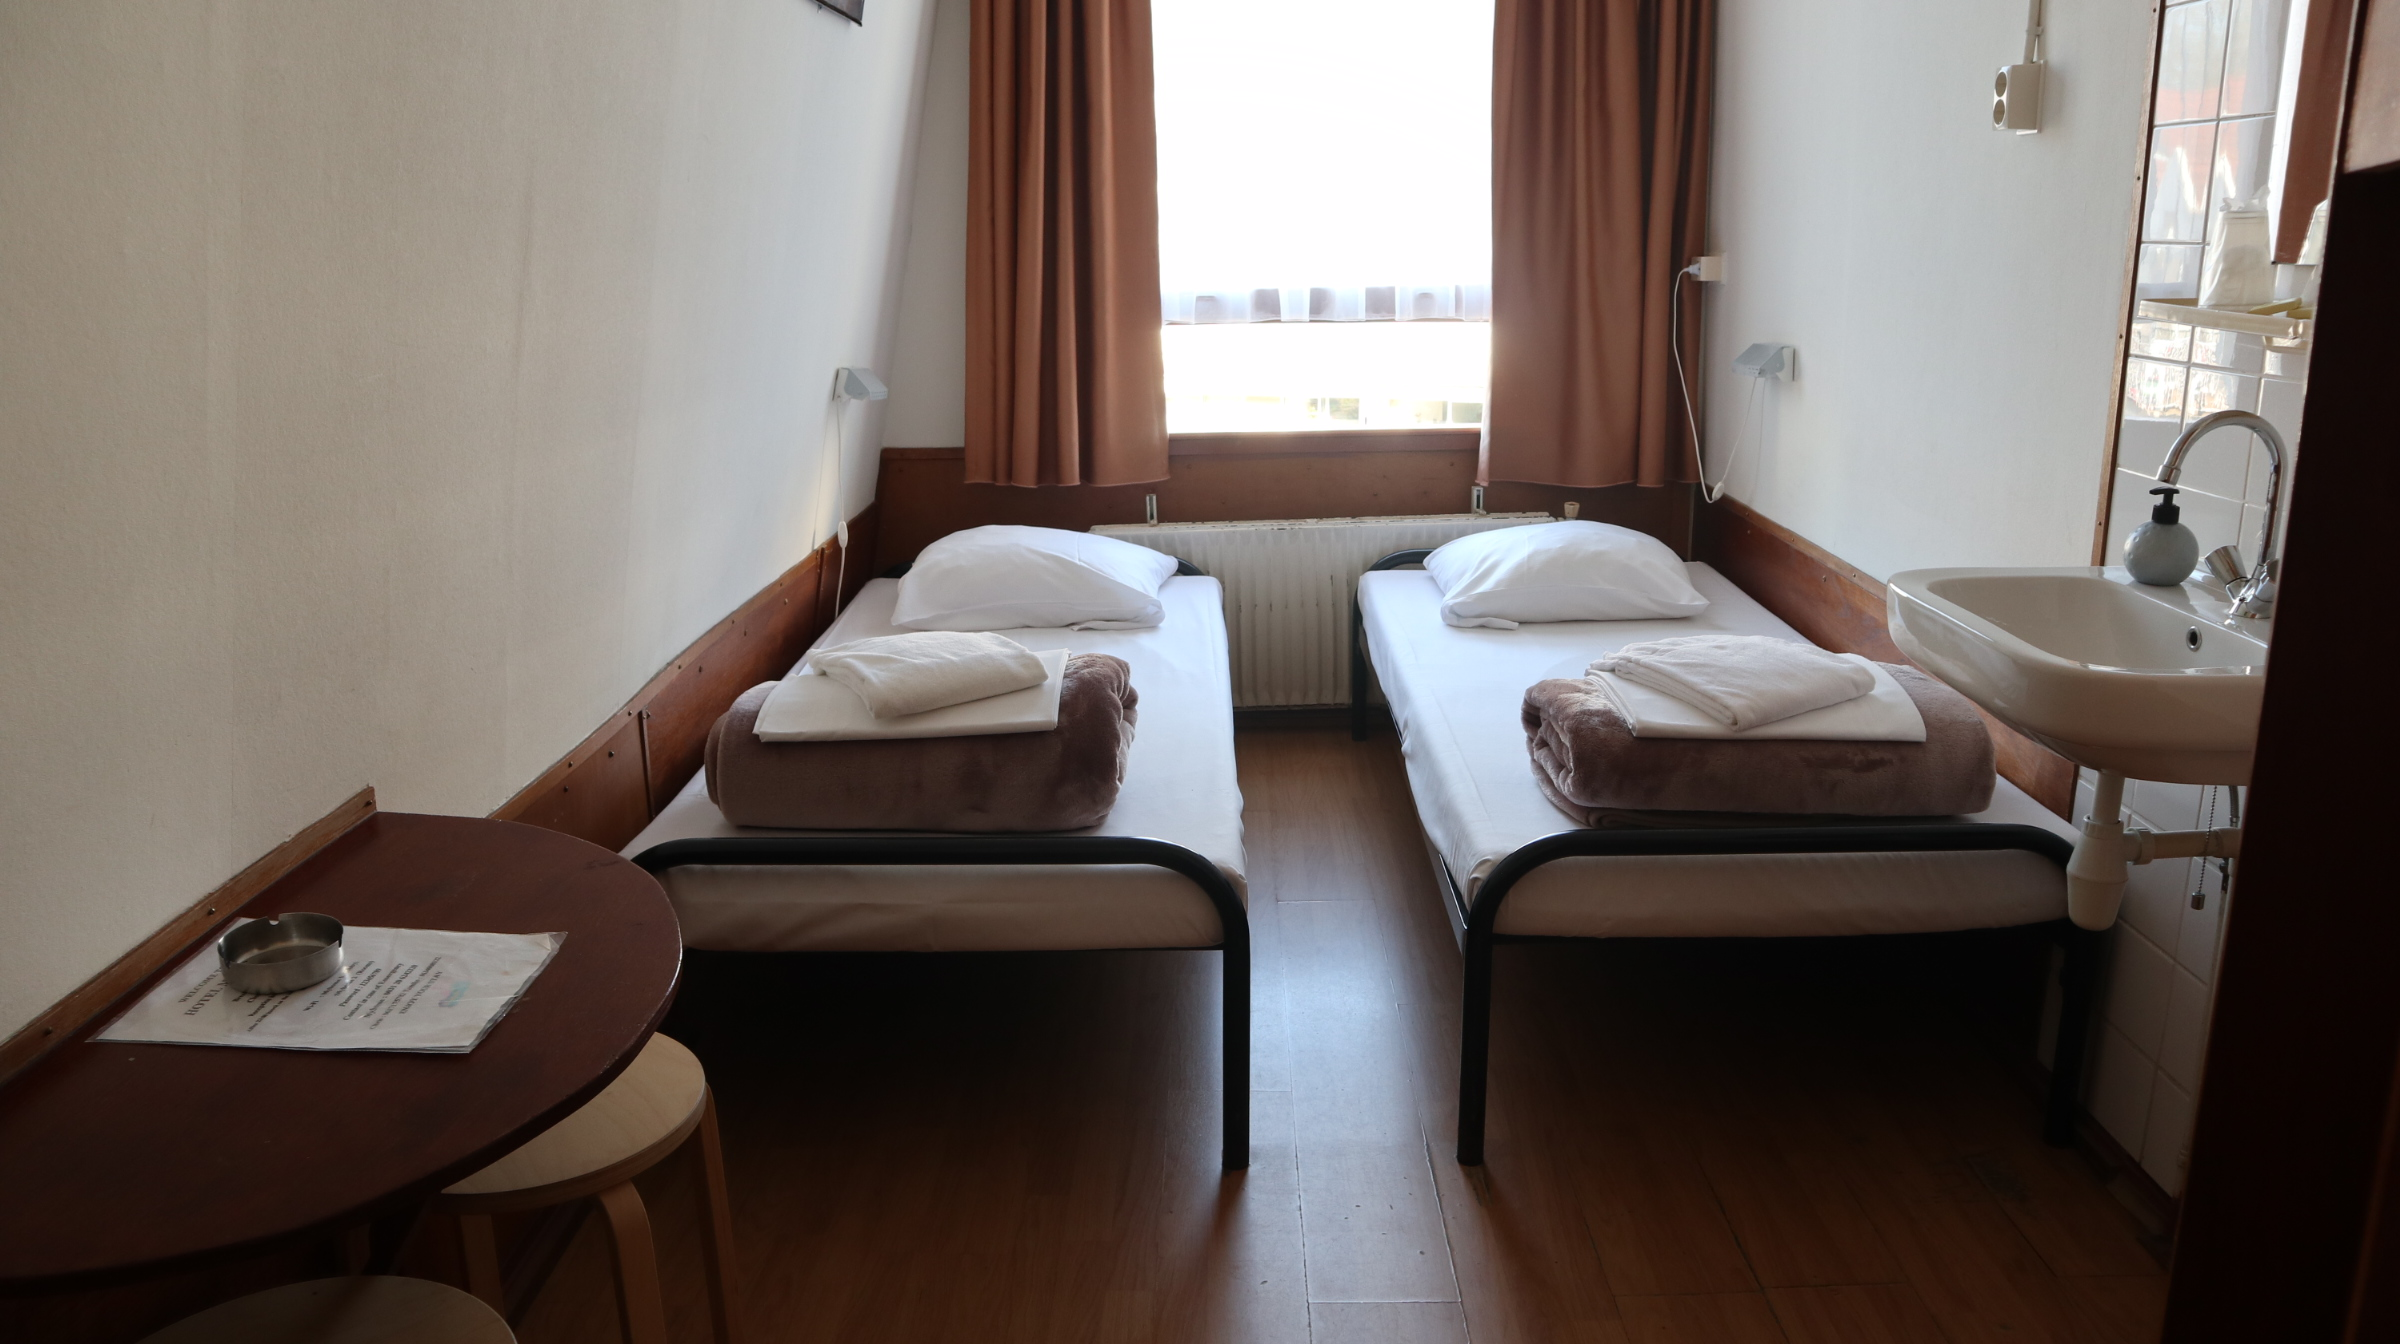 Amsterdam Budget hotel - double Room